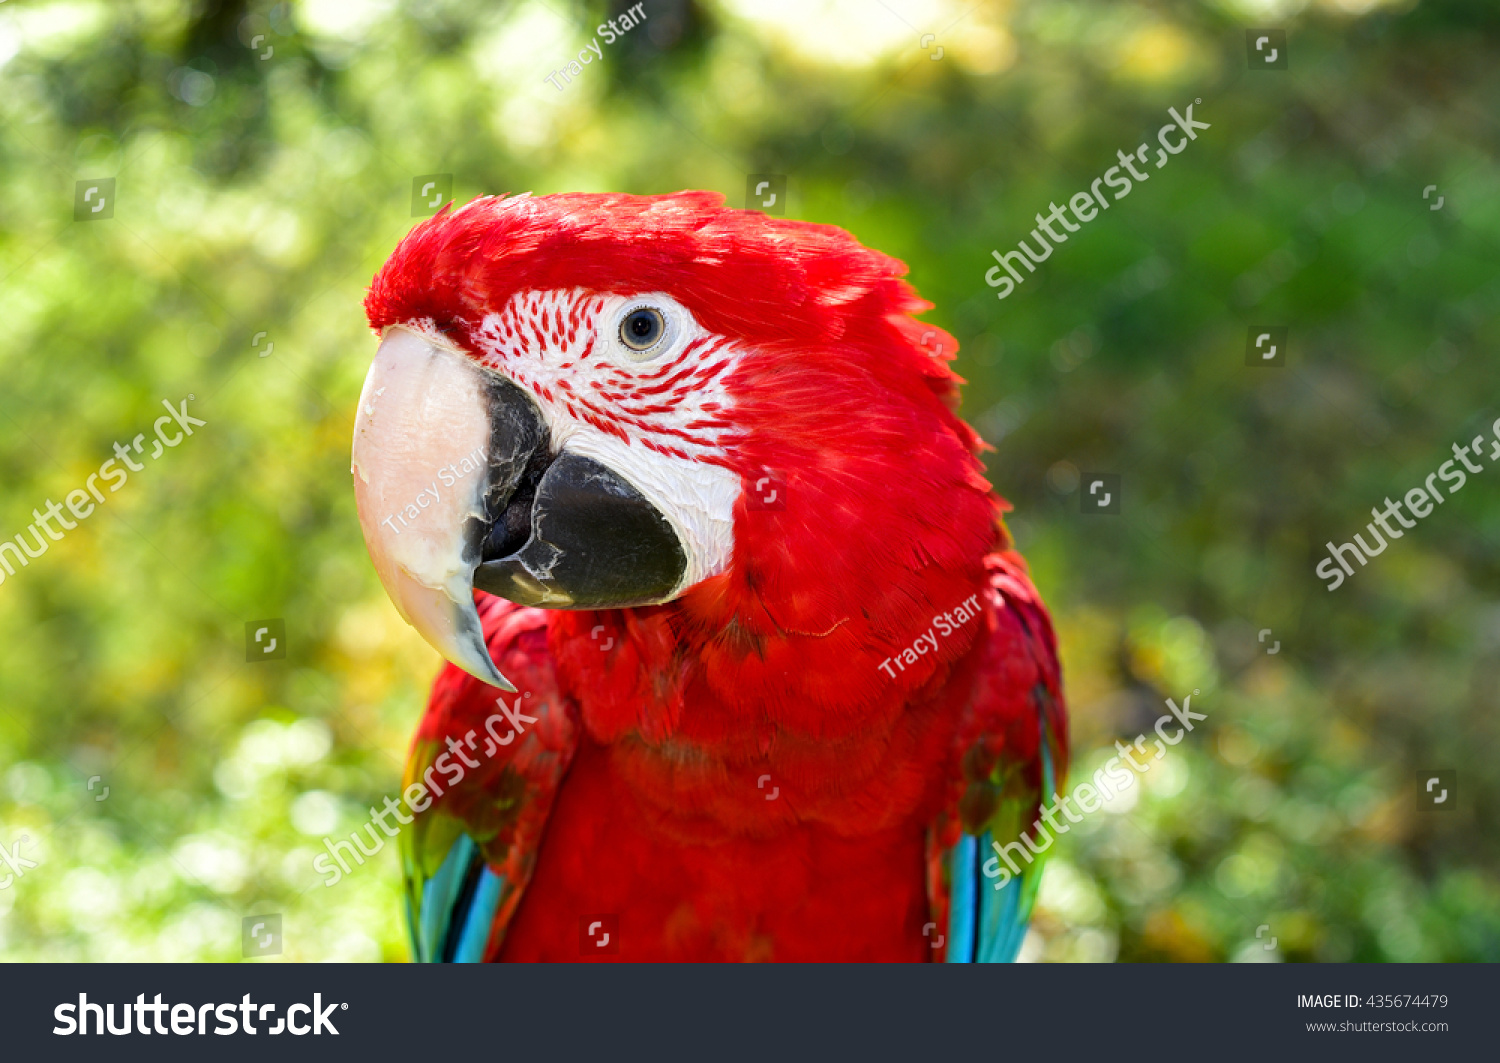 Beautiful Birds Scarlet Macaw Redandgreen Macaw Stock Photo ...